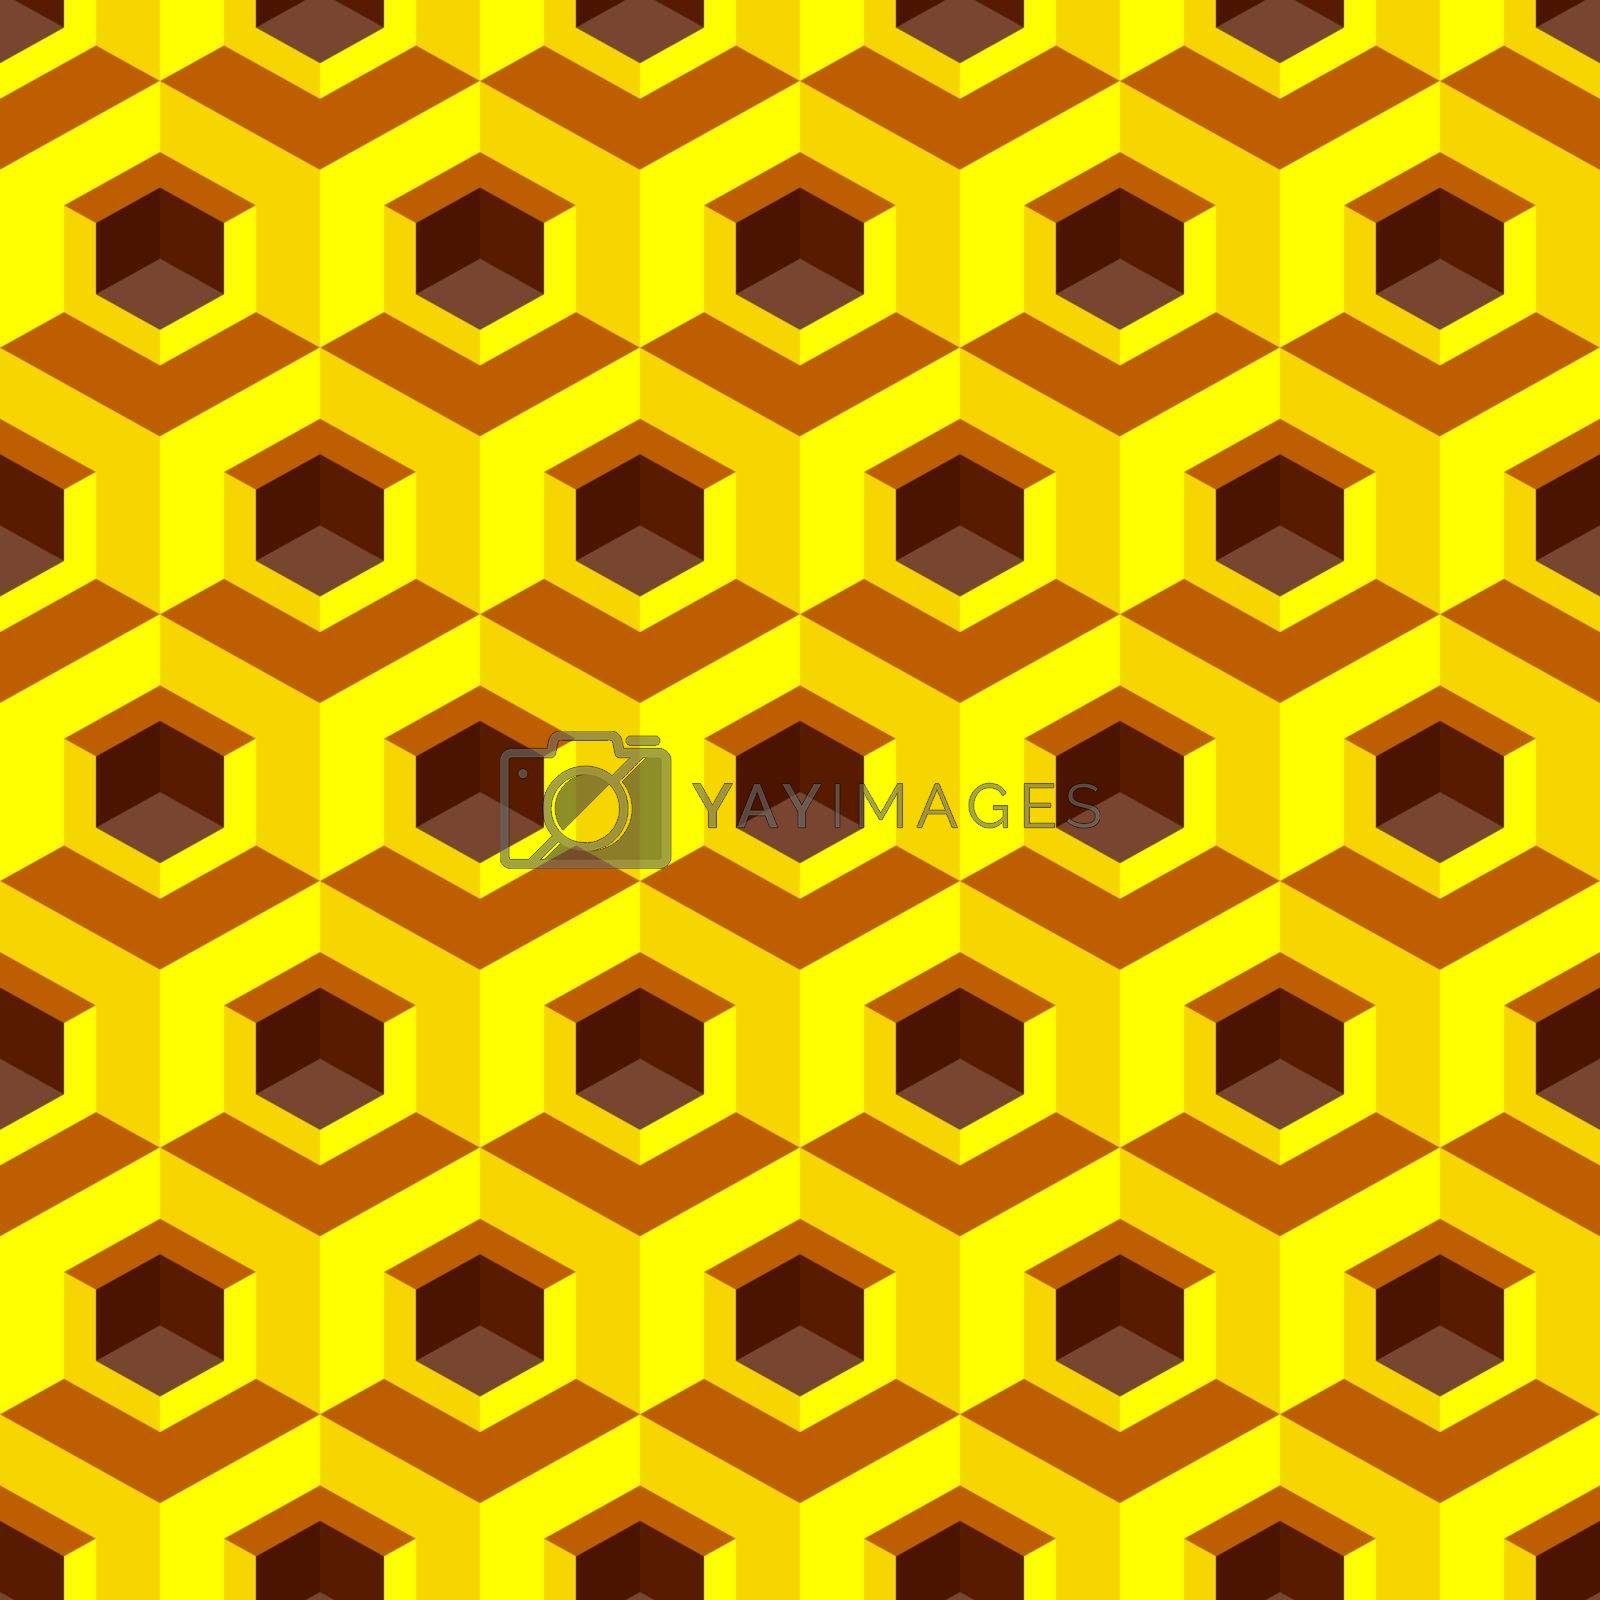 Honeycomb background 3d. Mosaic. Vector illustration. Can be used for wallpaper, web page background, web banners.